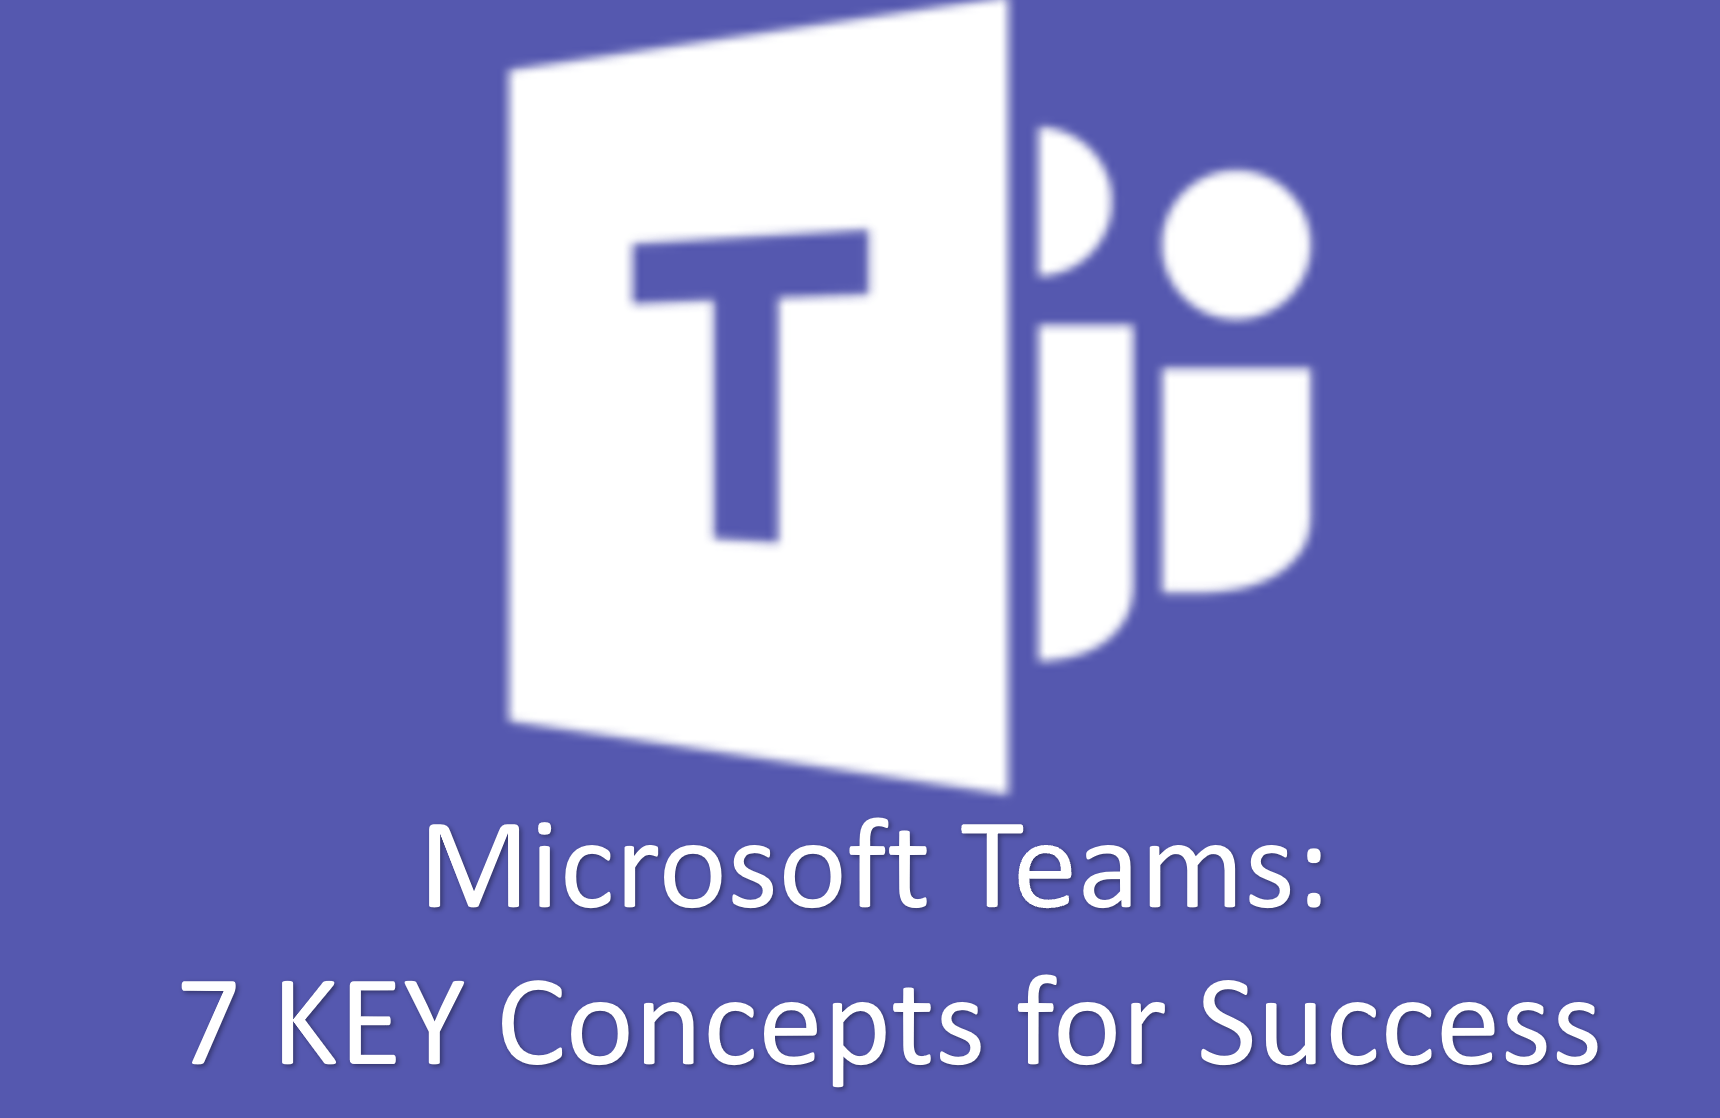 Microsoft Teams: 7 Key Concepts for Strategy and Planning for Success